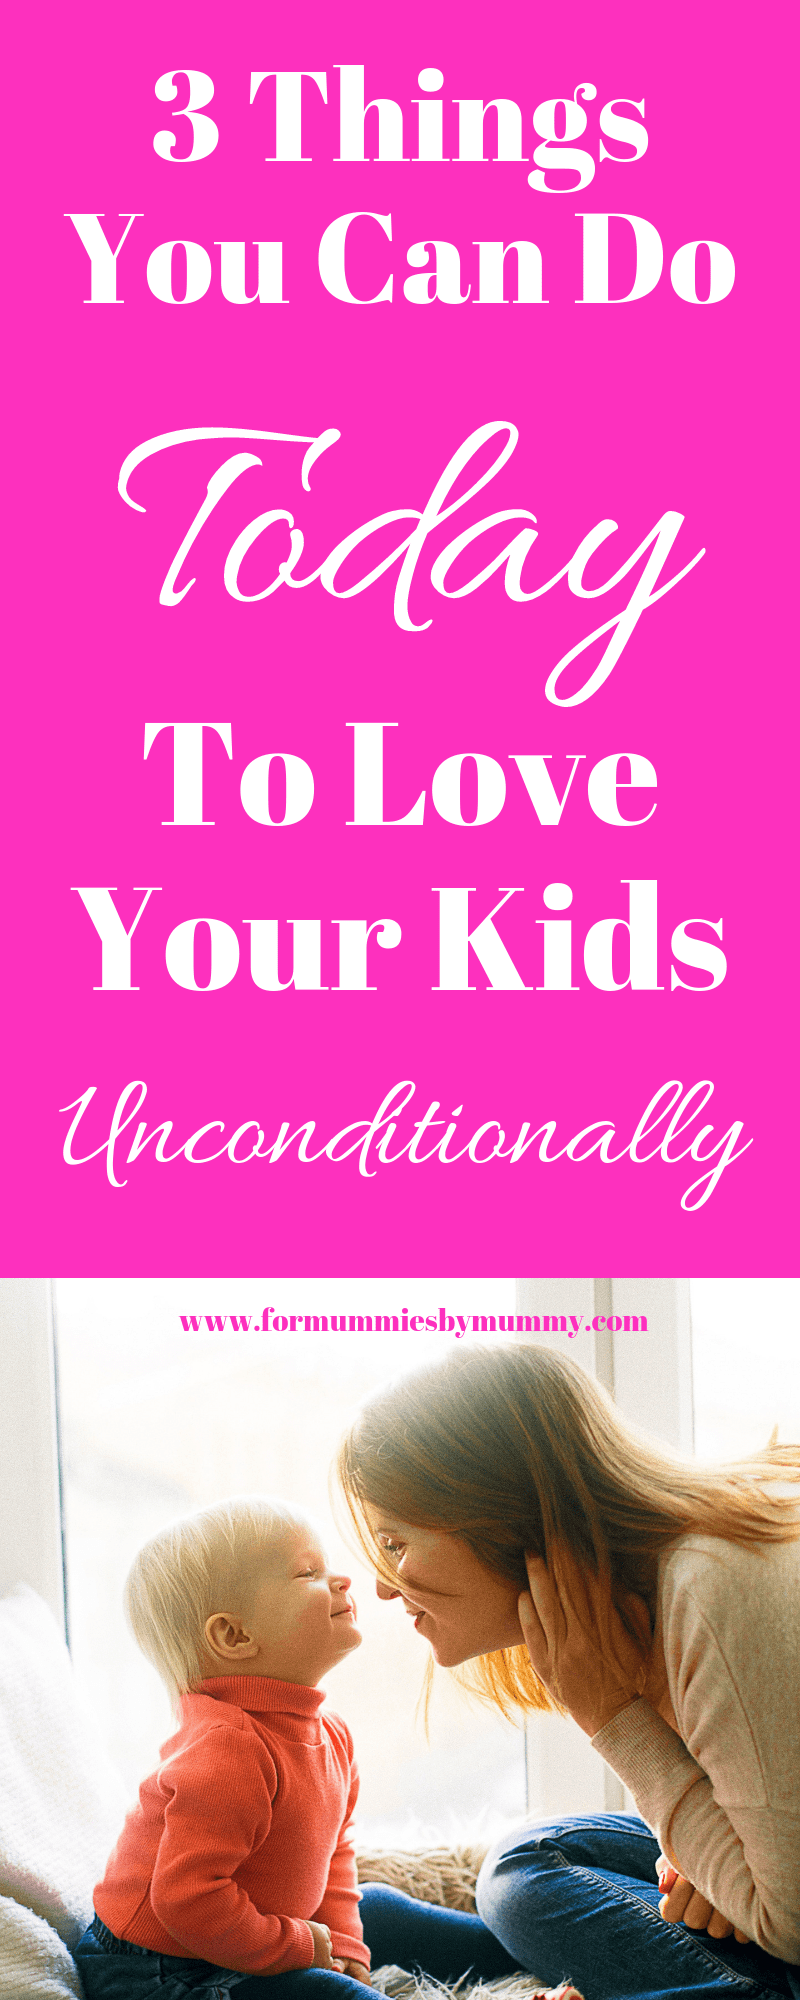 3 simple daily practices to help you love your kids unconditionally #parentingtips #momlife #christianmom #lifelessons